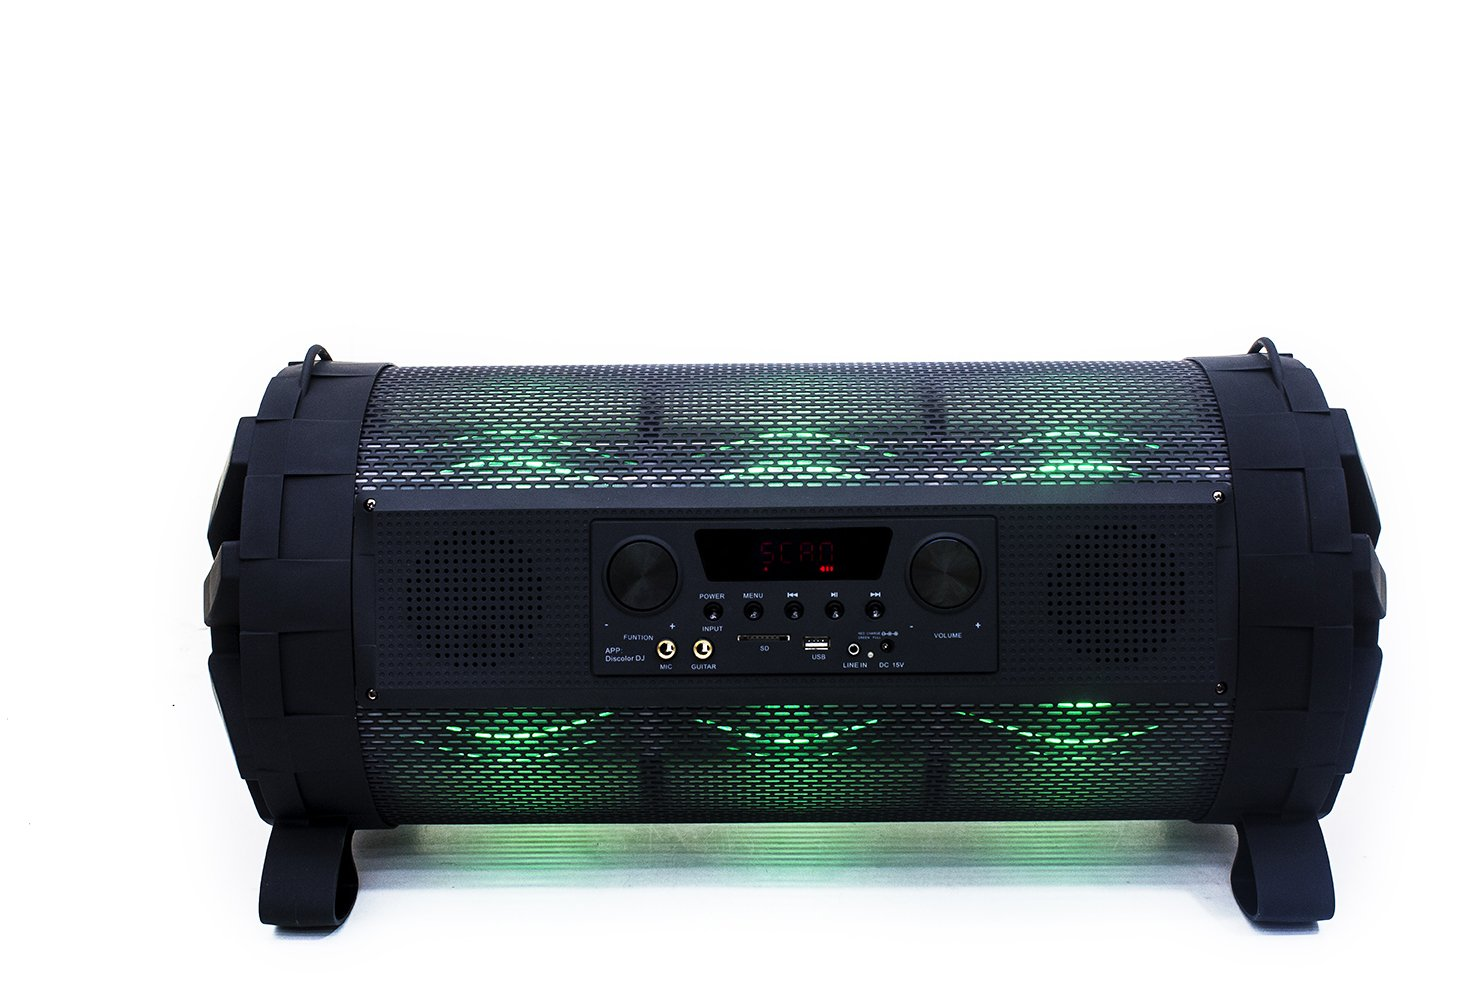 Soundstream Street Hopper 6 Speaker With Light Show 2 Us Blaster Products Car Audio Wiring Kits Usb 6128 Channel Home Theater Stereo System